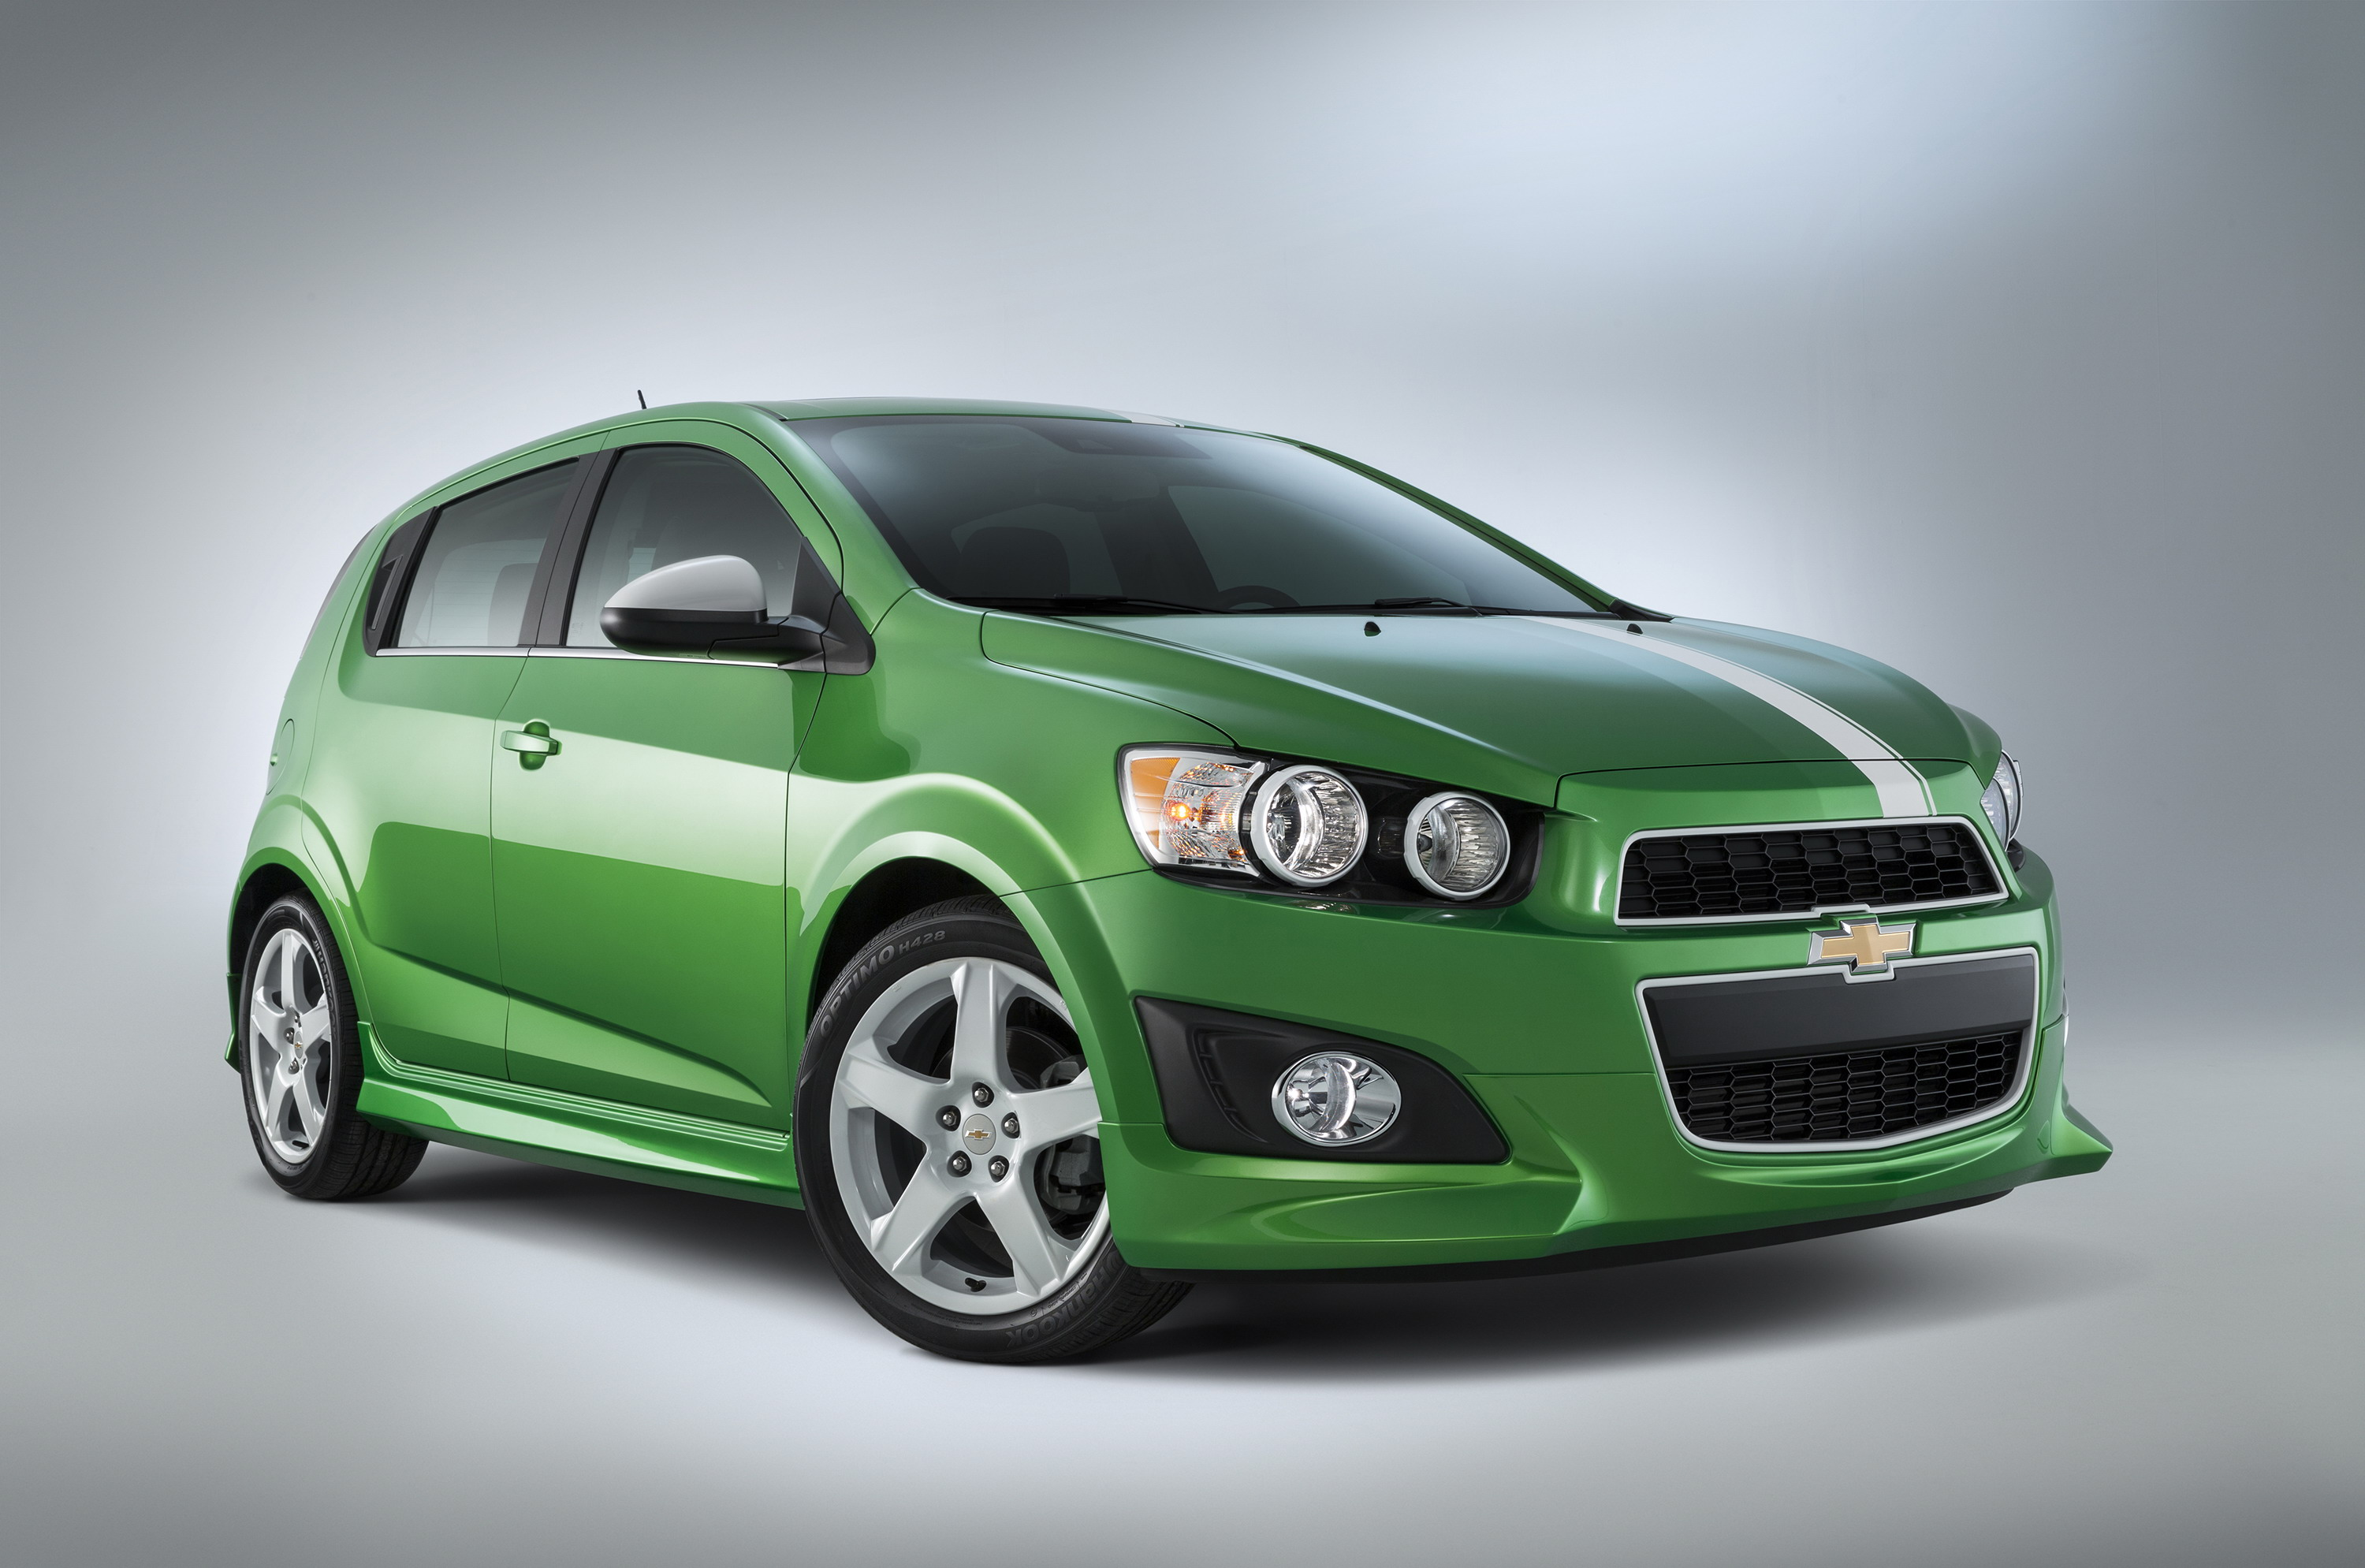 sonic perf concept cars performance speed top chevrolet